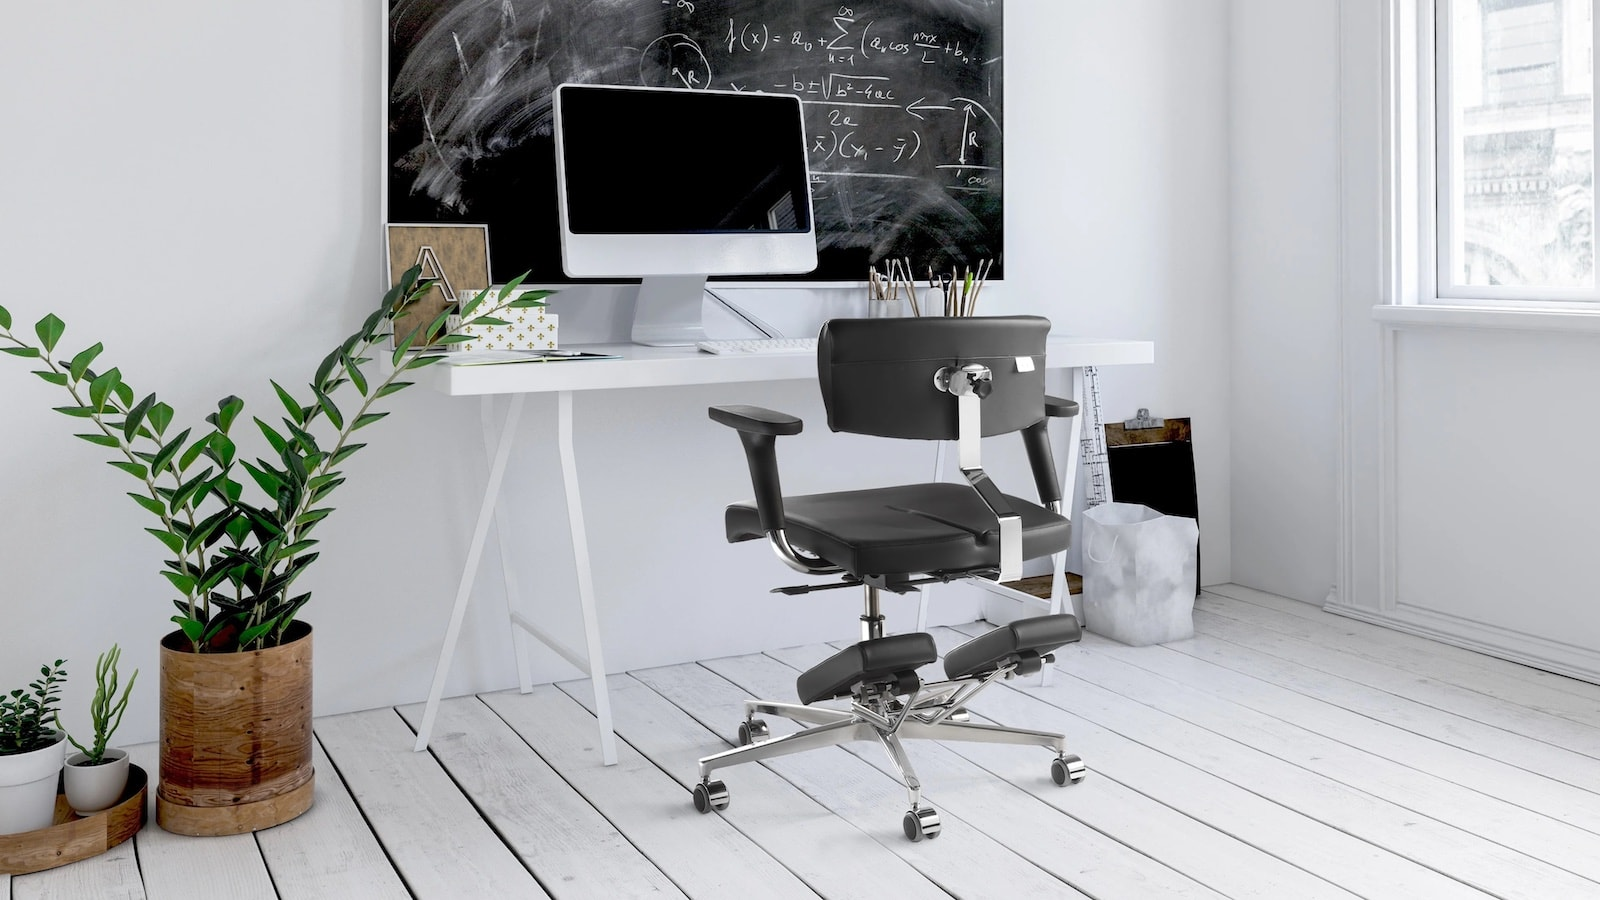 Komfort Chair ergonomic flexible seat series lets you freely adjust almost every angle